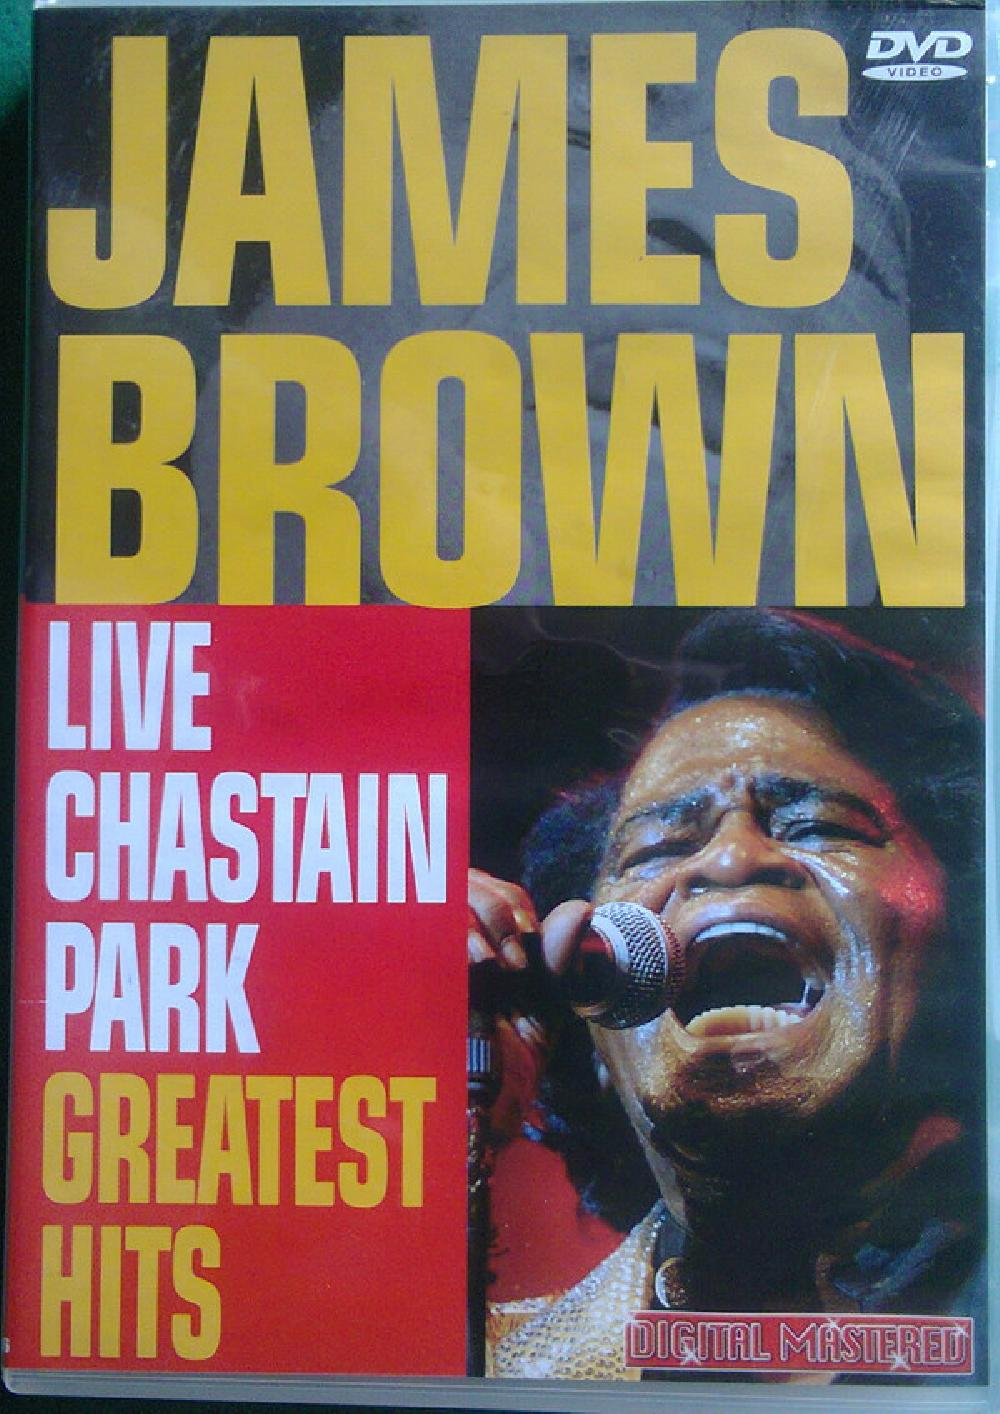 JAMES BROWN - Live At Chastain Park -Greatest Hits - DVD